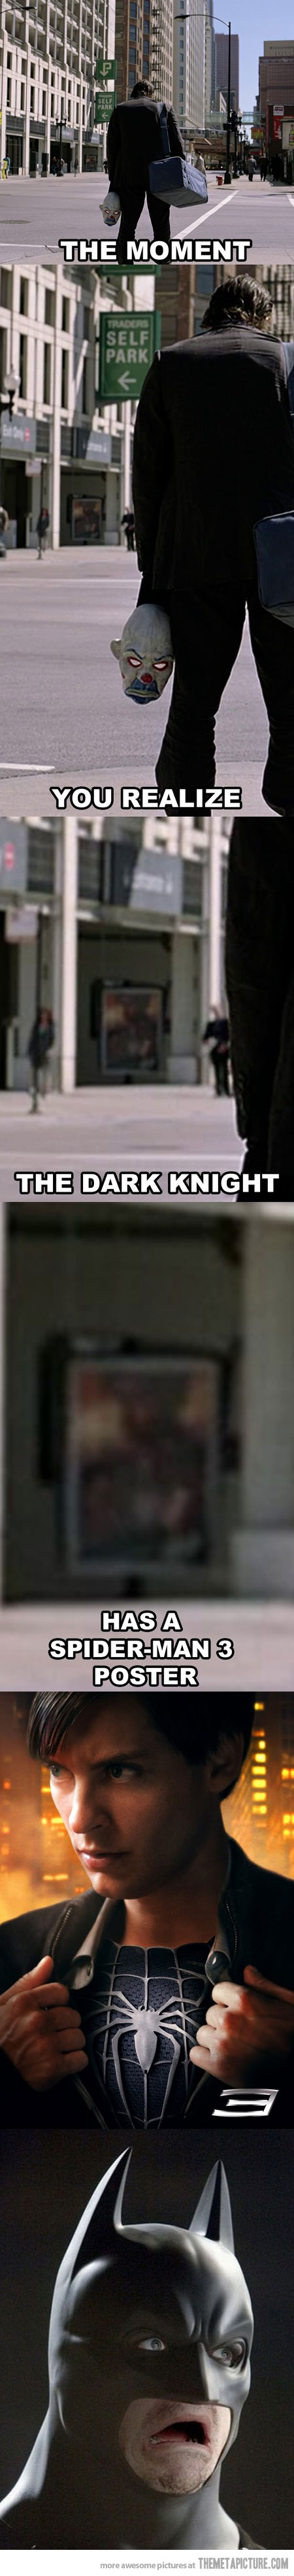 The moment you realize the Dark Knight has a Spiderman 3 poster   Marvel vs DC